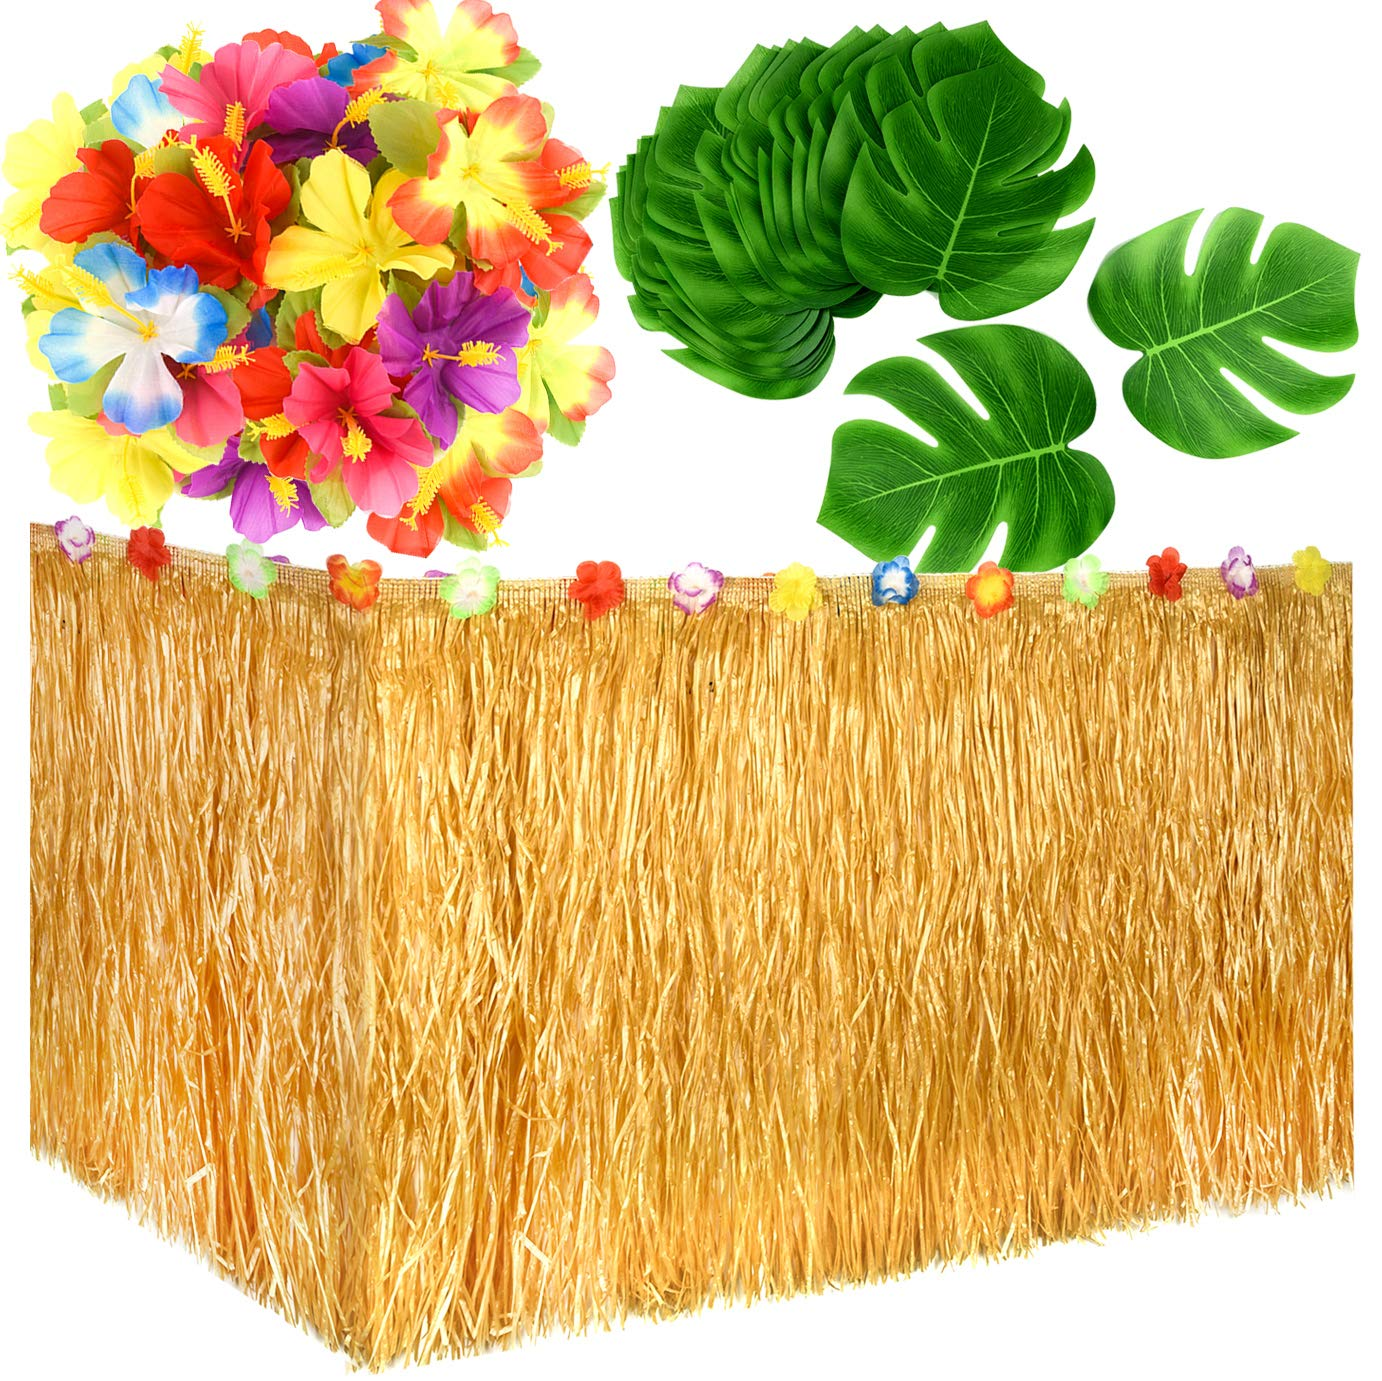 KUUQA Luau Hawaiian Grass Table Skirt and 48 Pcs Artificial Tropical Palm Monstera Leaves Hibiscus Flowers for Aloha Tiki Jungle Moana Theme Tropical Birthday Party Decorations Ideas Supplies by KUUQA